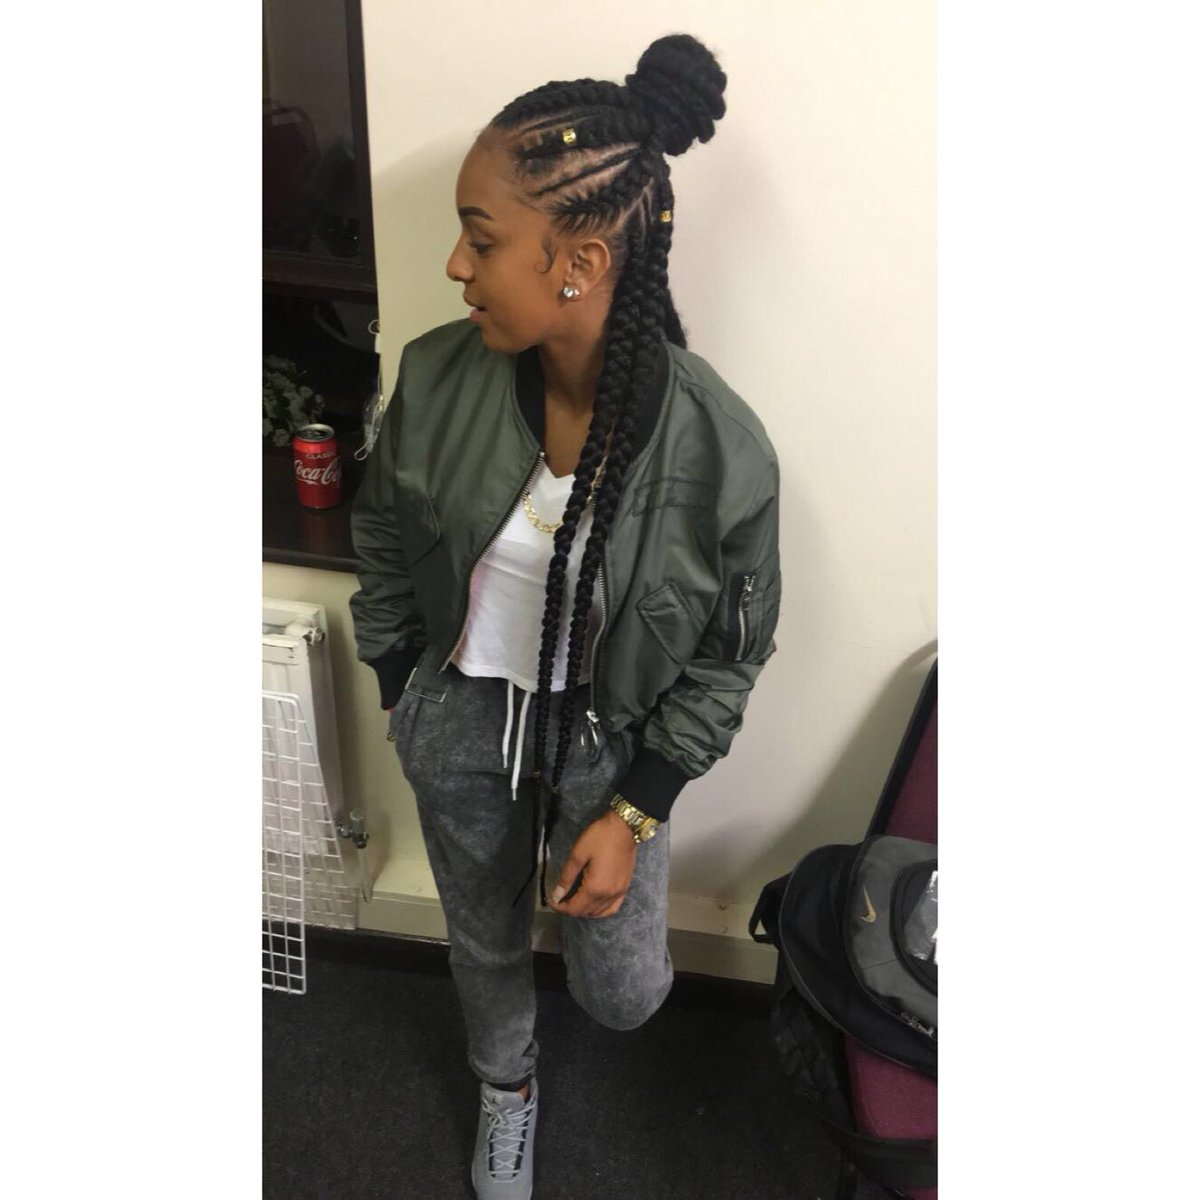 Paigey Cakey on Twitter: